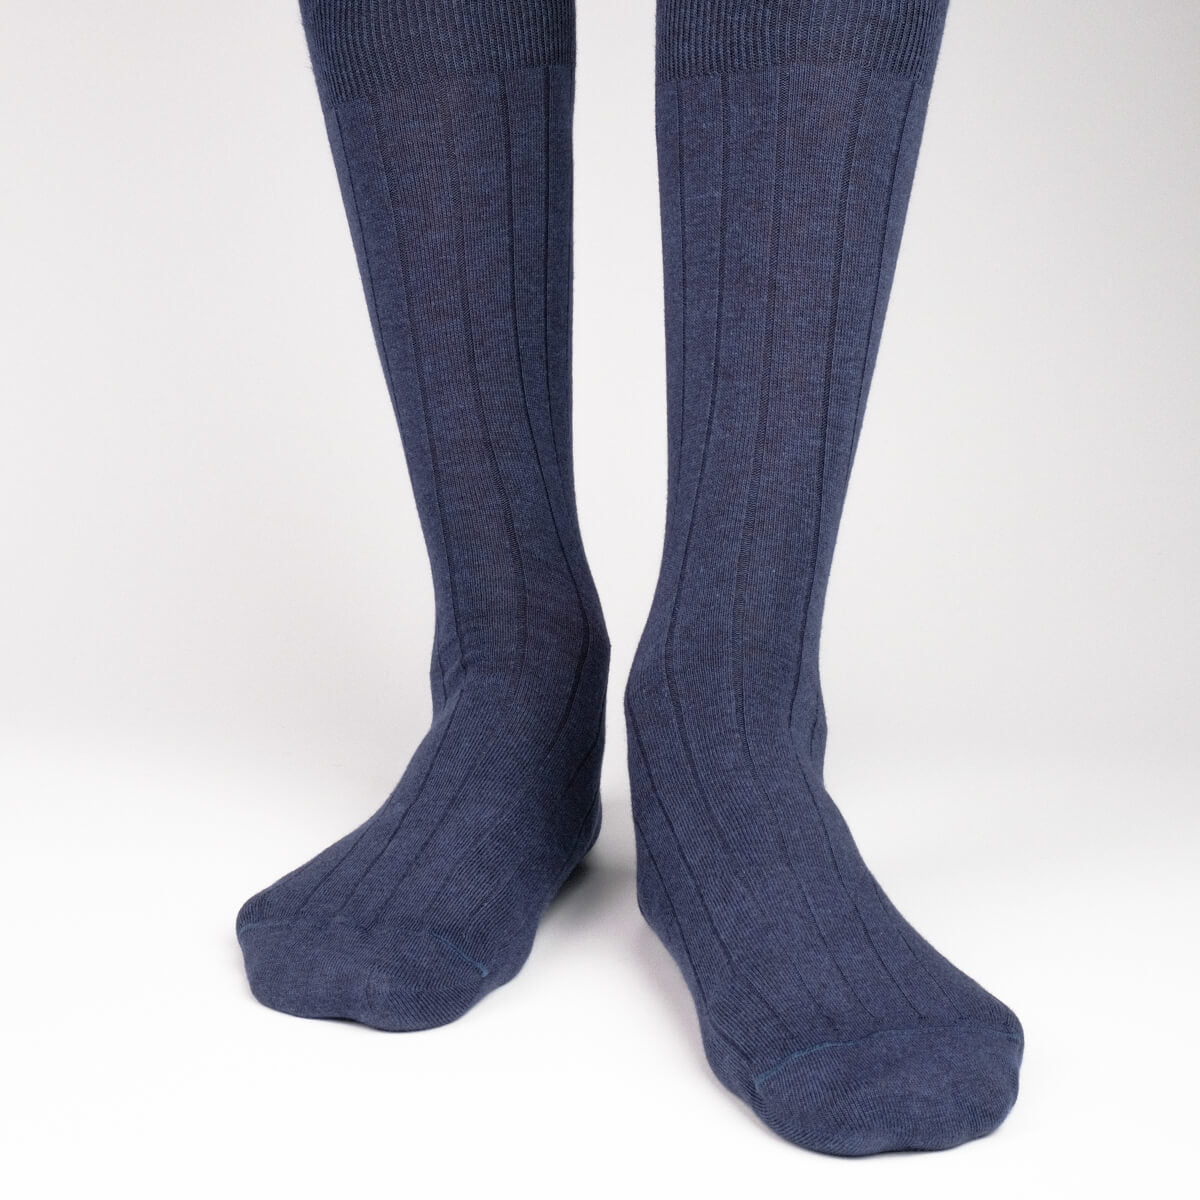 Mens Socks - The Classic Rib Men's Socks - Blue⎪Etiquette Clothiers